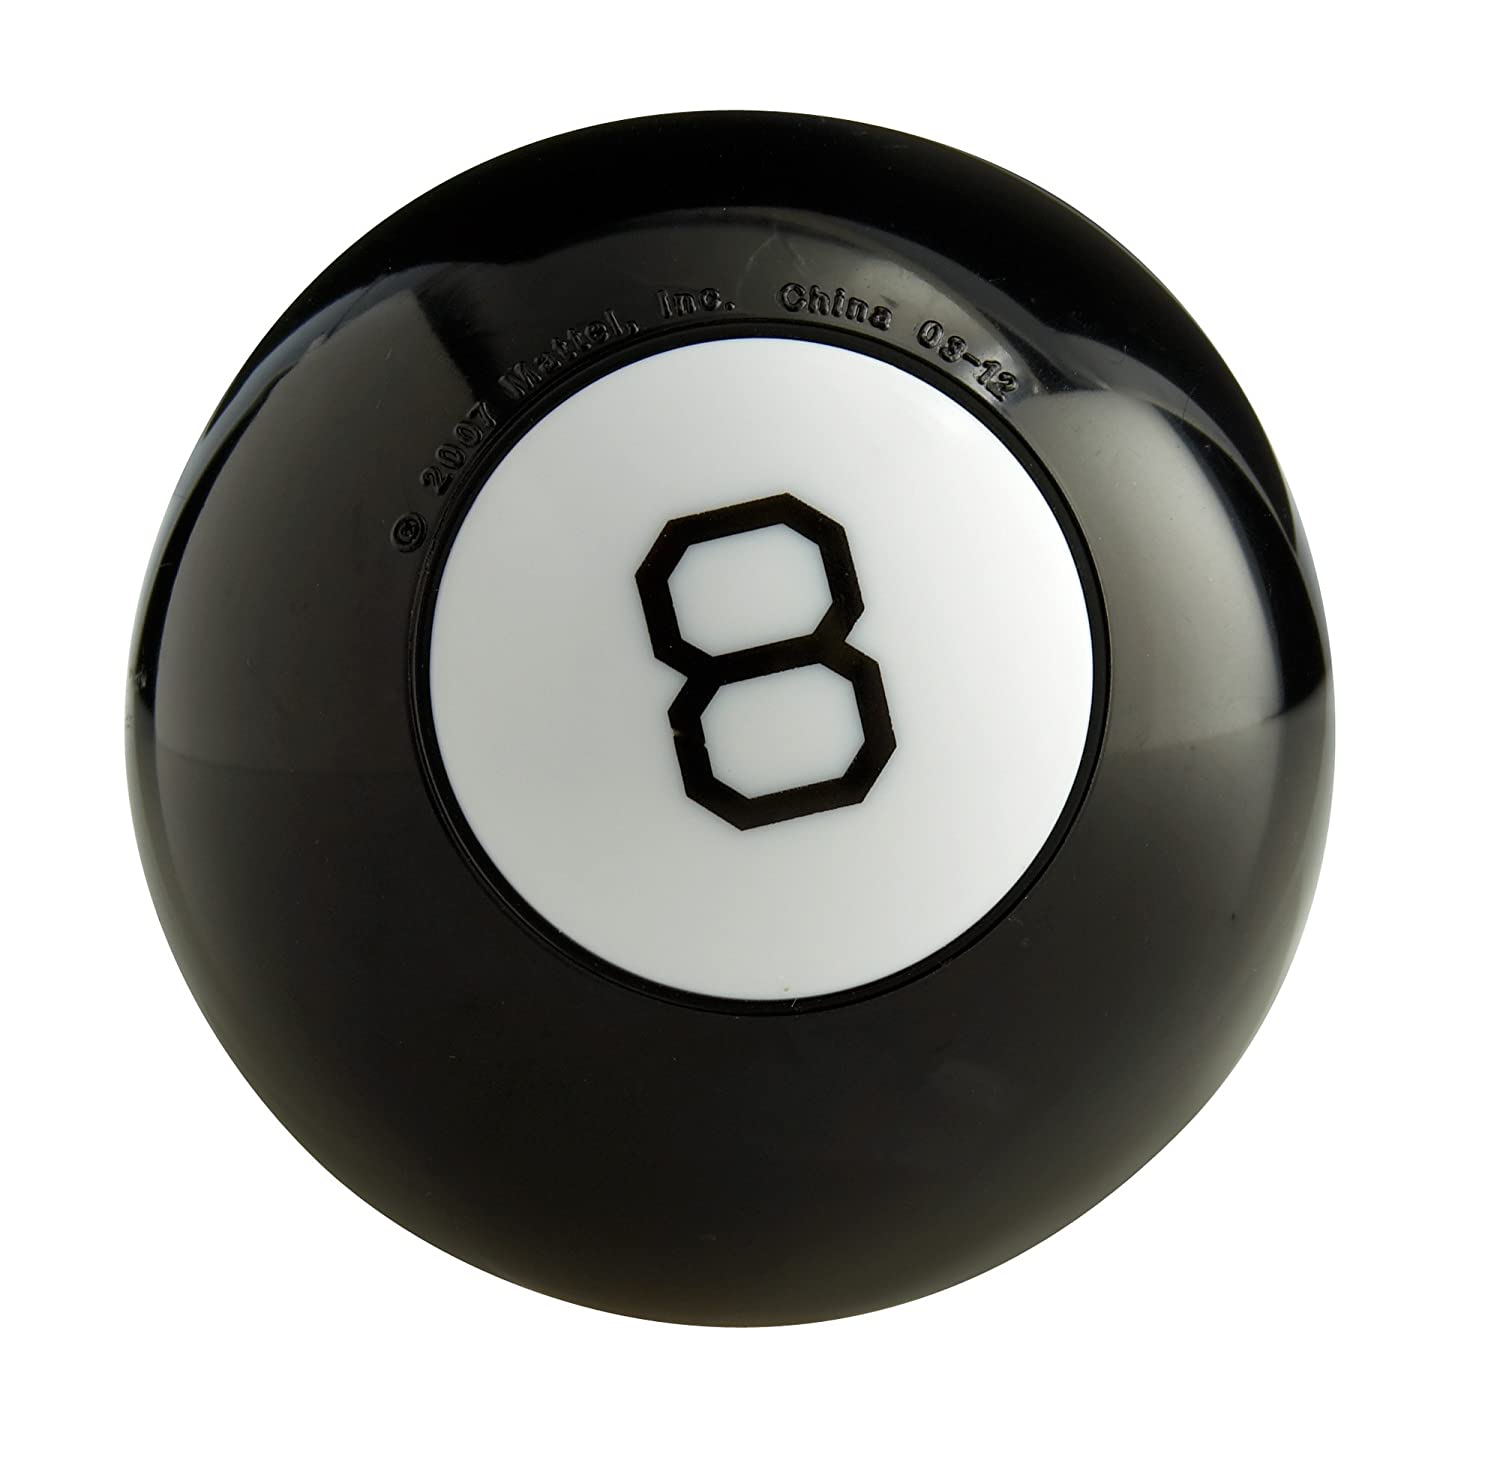 Amazon.com  Mattel Games Magic 8 Ball Mini  Toys   Games a999f7f4e